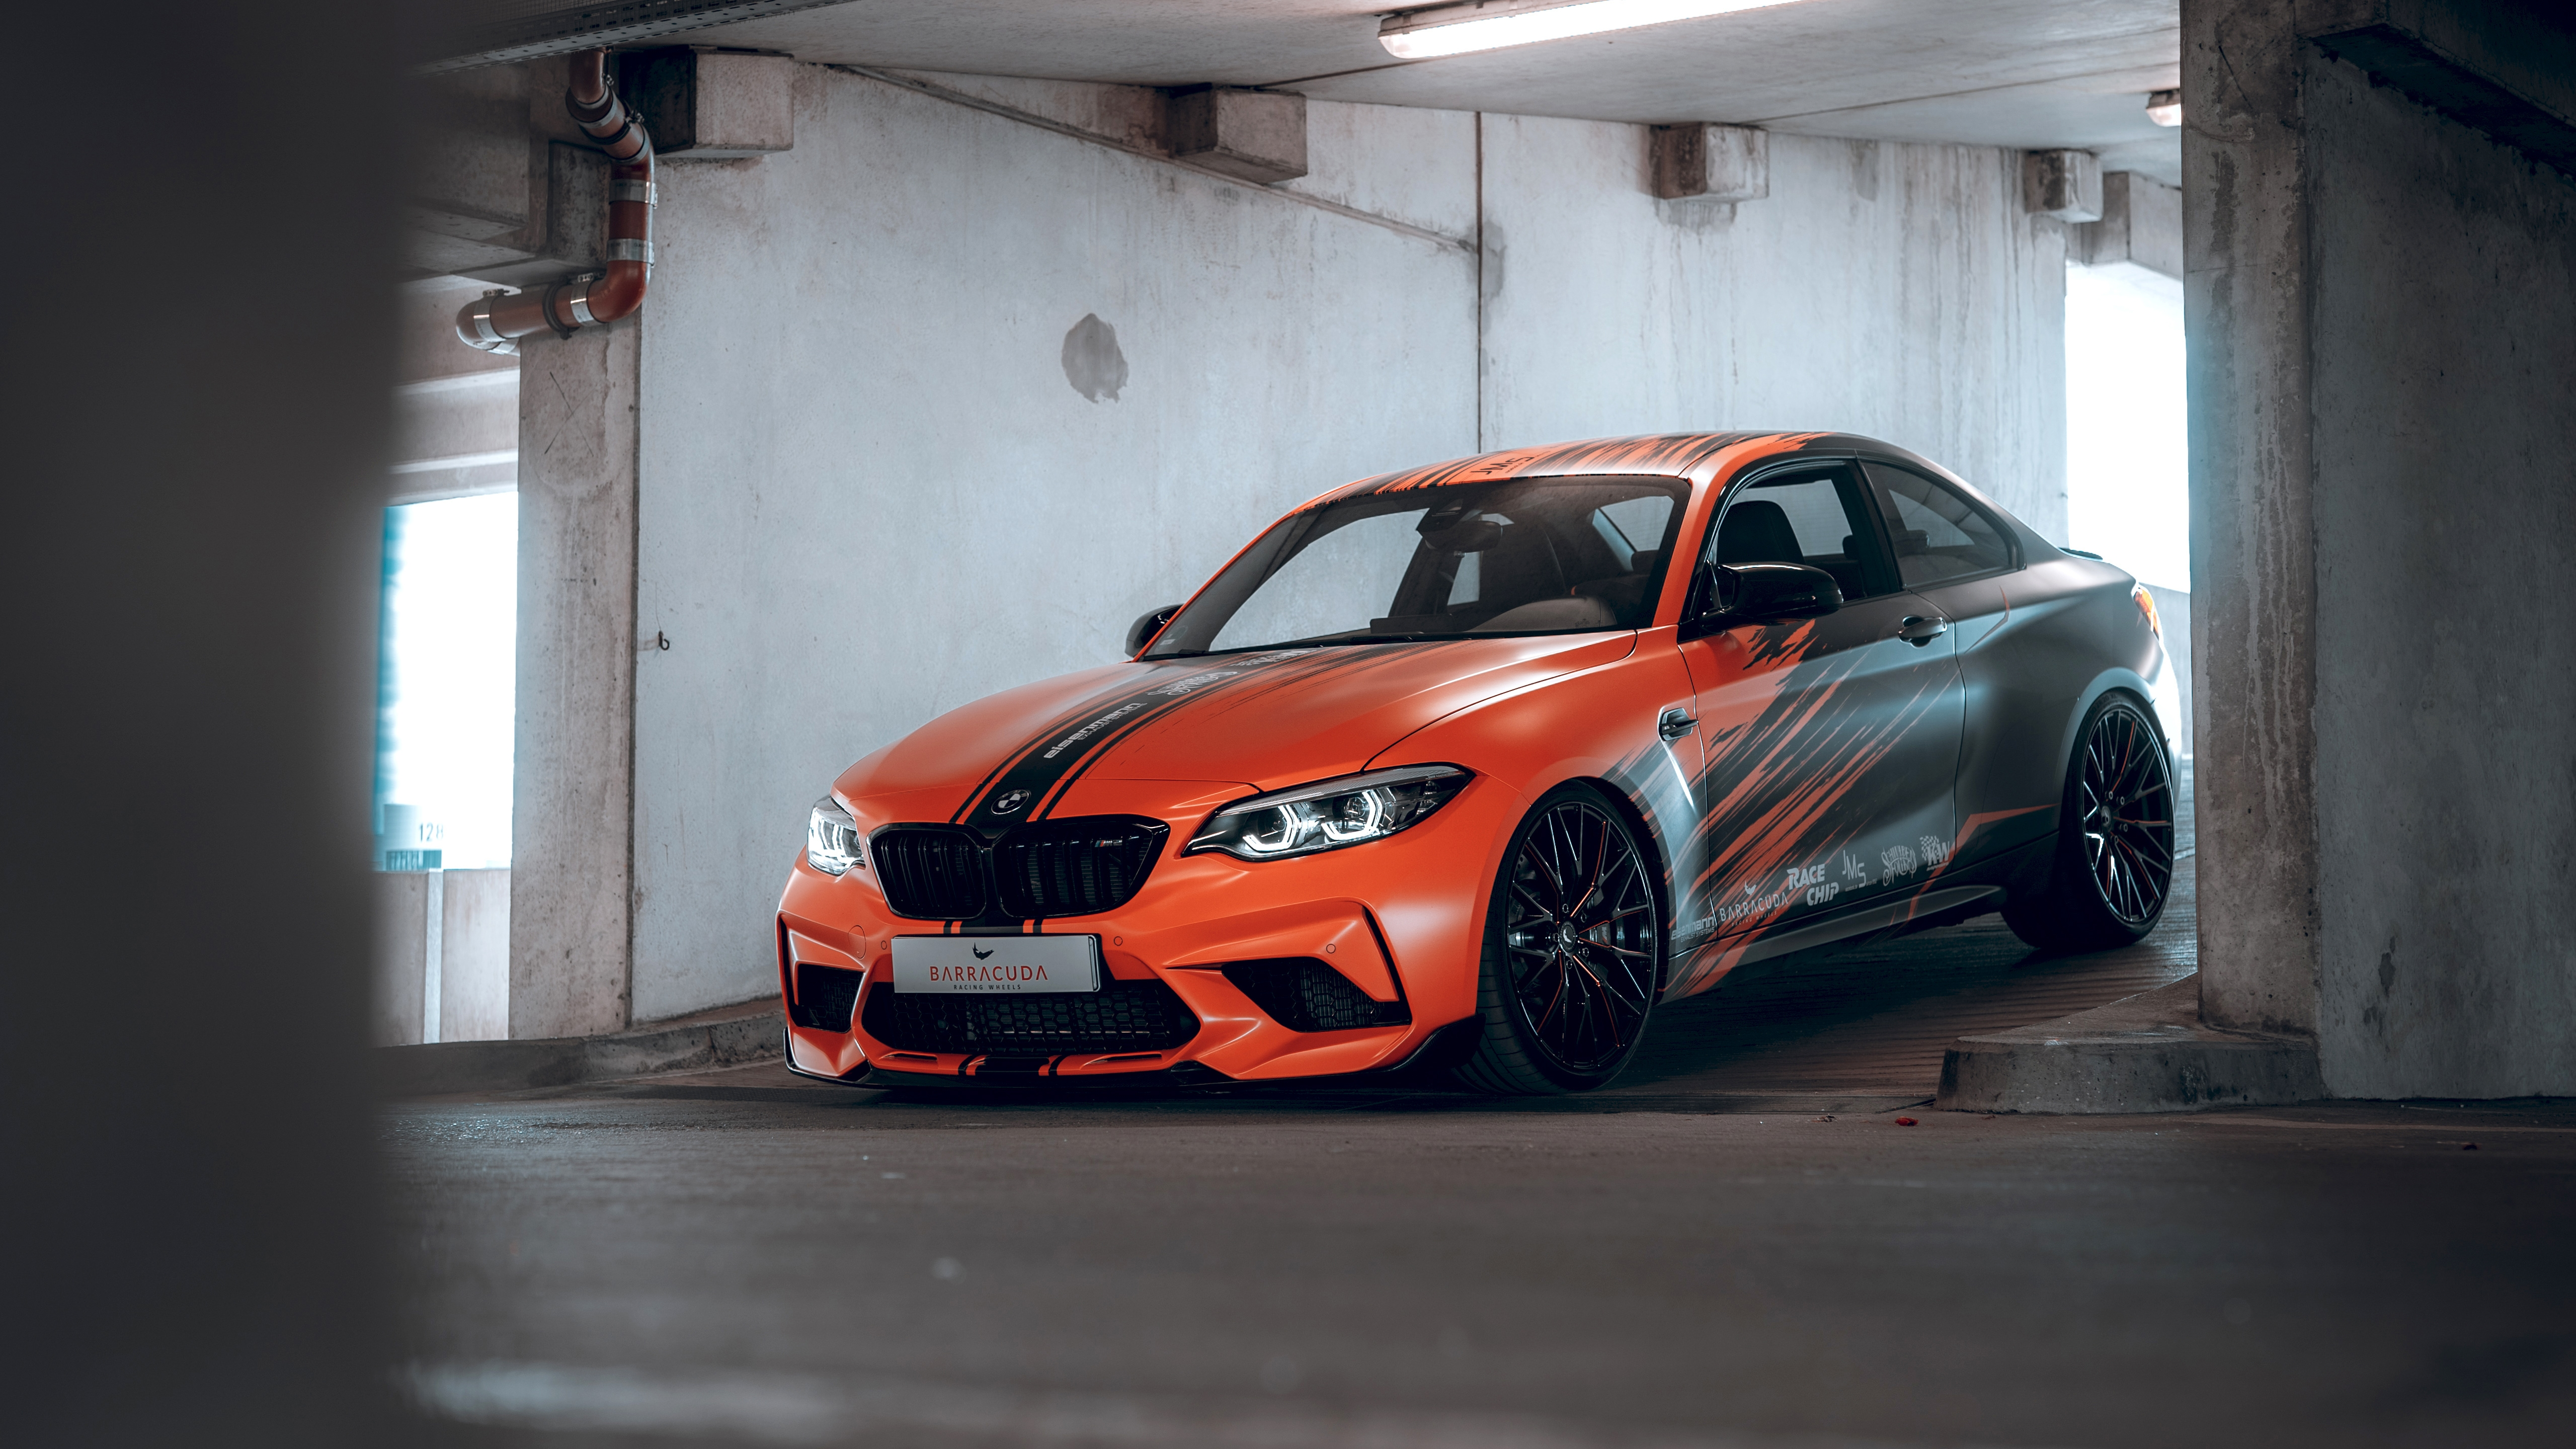 jms bmw m2 competition 2020 4k 5k hd cars wallpaper 9706051598451973